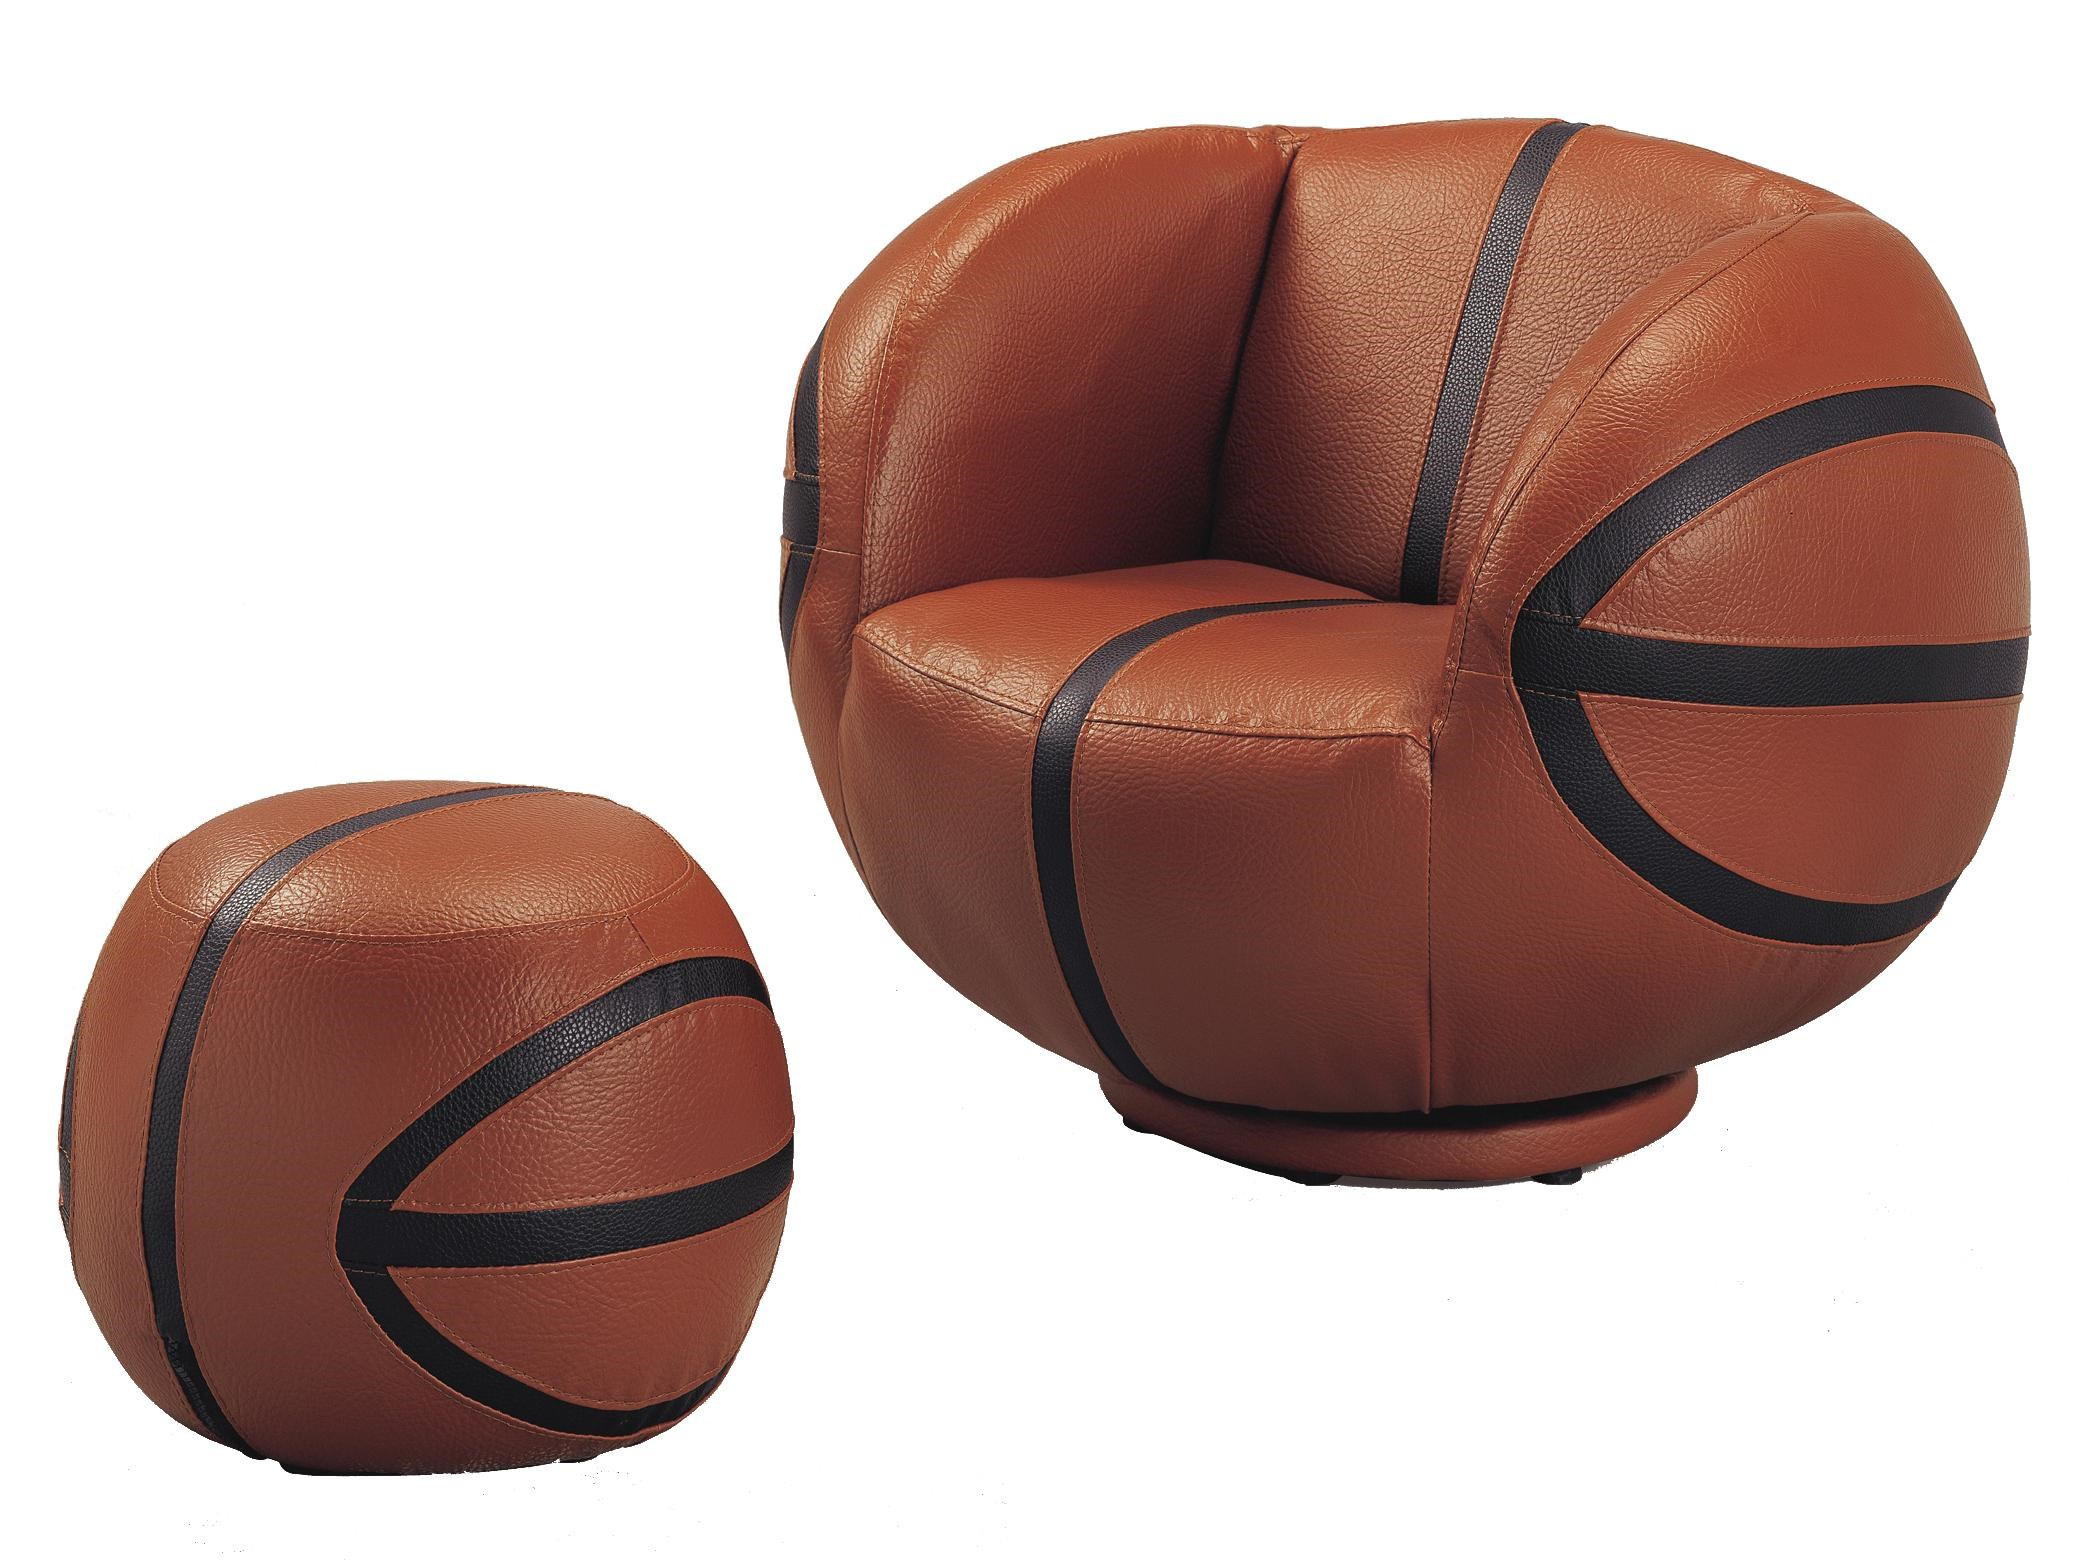 Kids Sport Chairs Basketball Swivel Chair u0026 Ottoman by Crown Mark  sc 1 st  Dunk u0026 Bright Furniture : basketball chairs - lorbestier.org